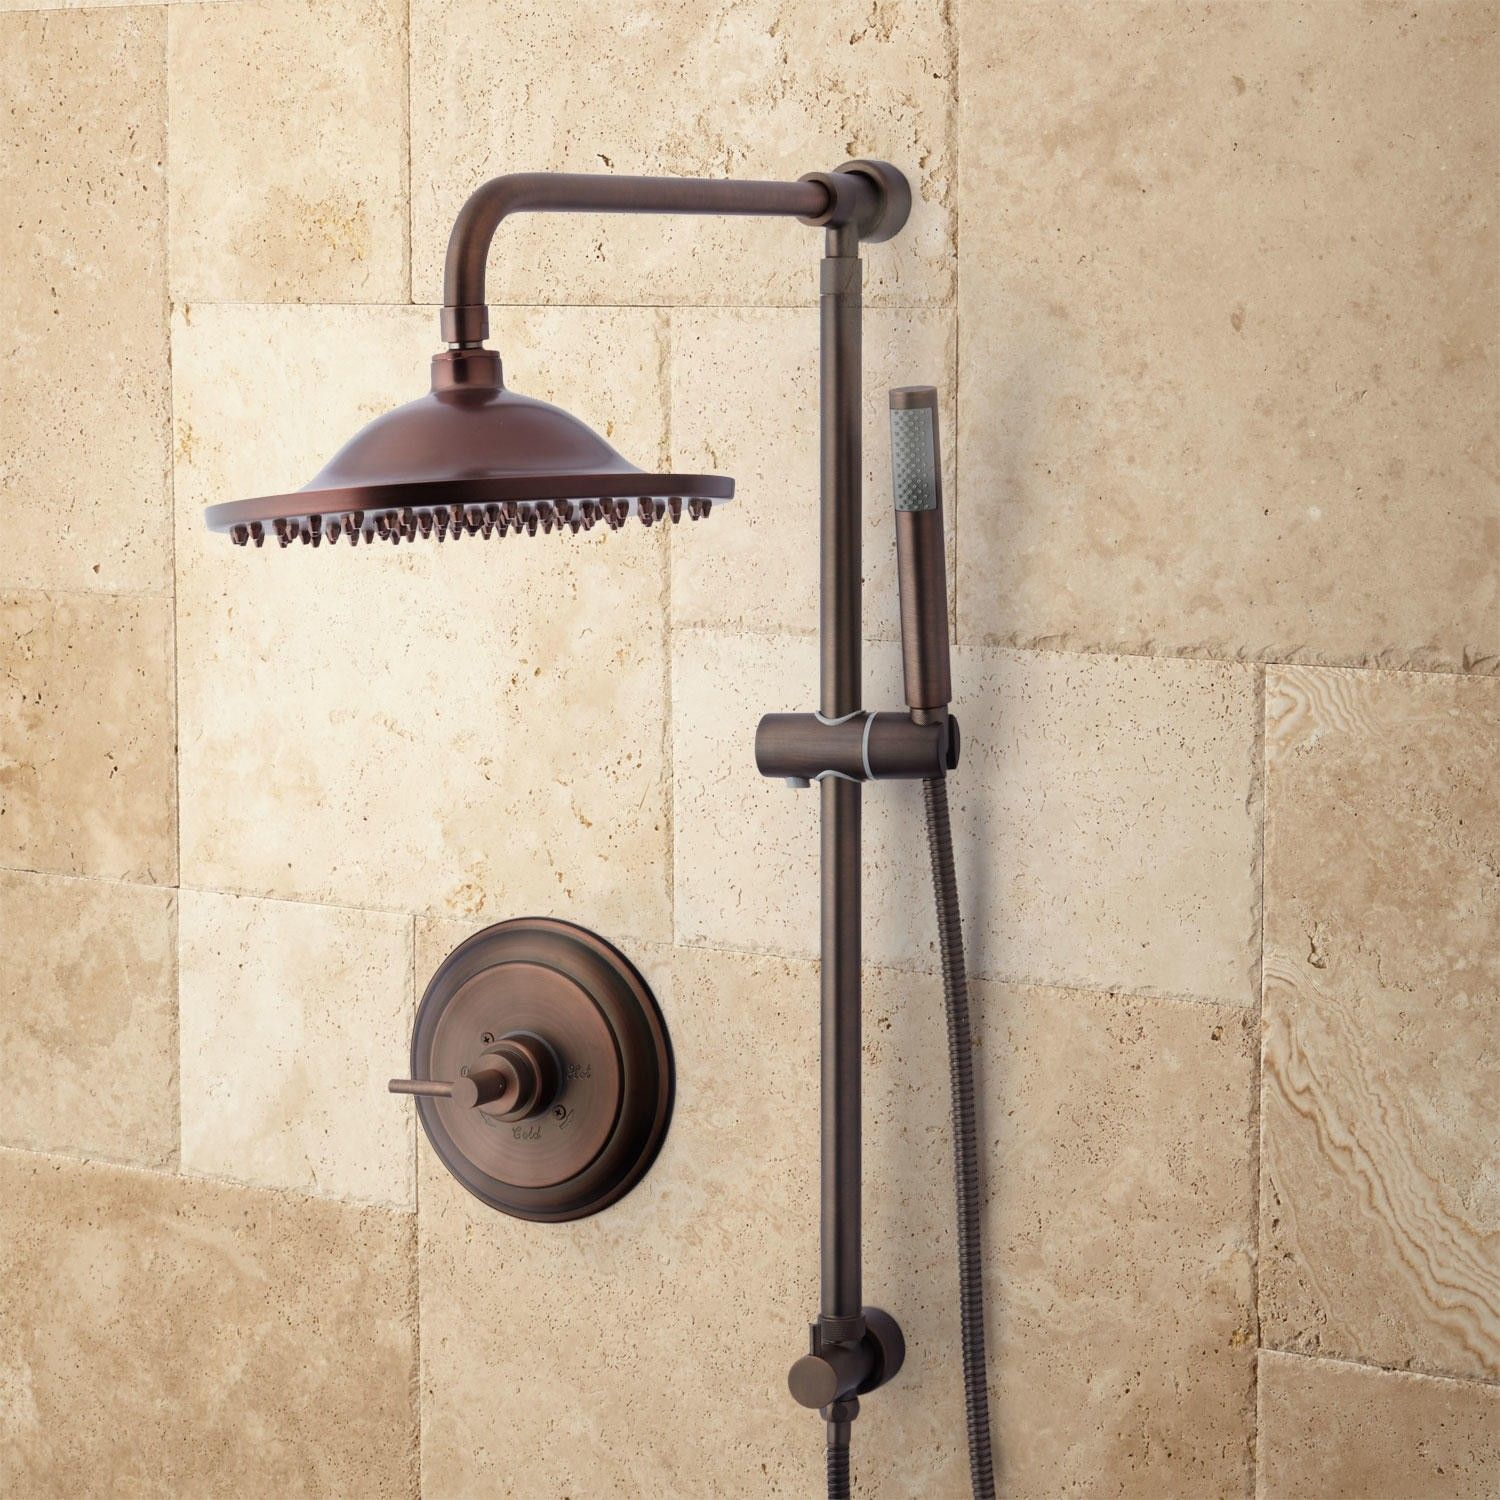 Bostonian Rainfall Nozzle Shower System - Hand Shower & Mixing Valve ...